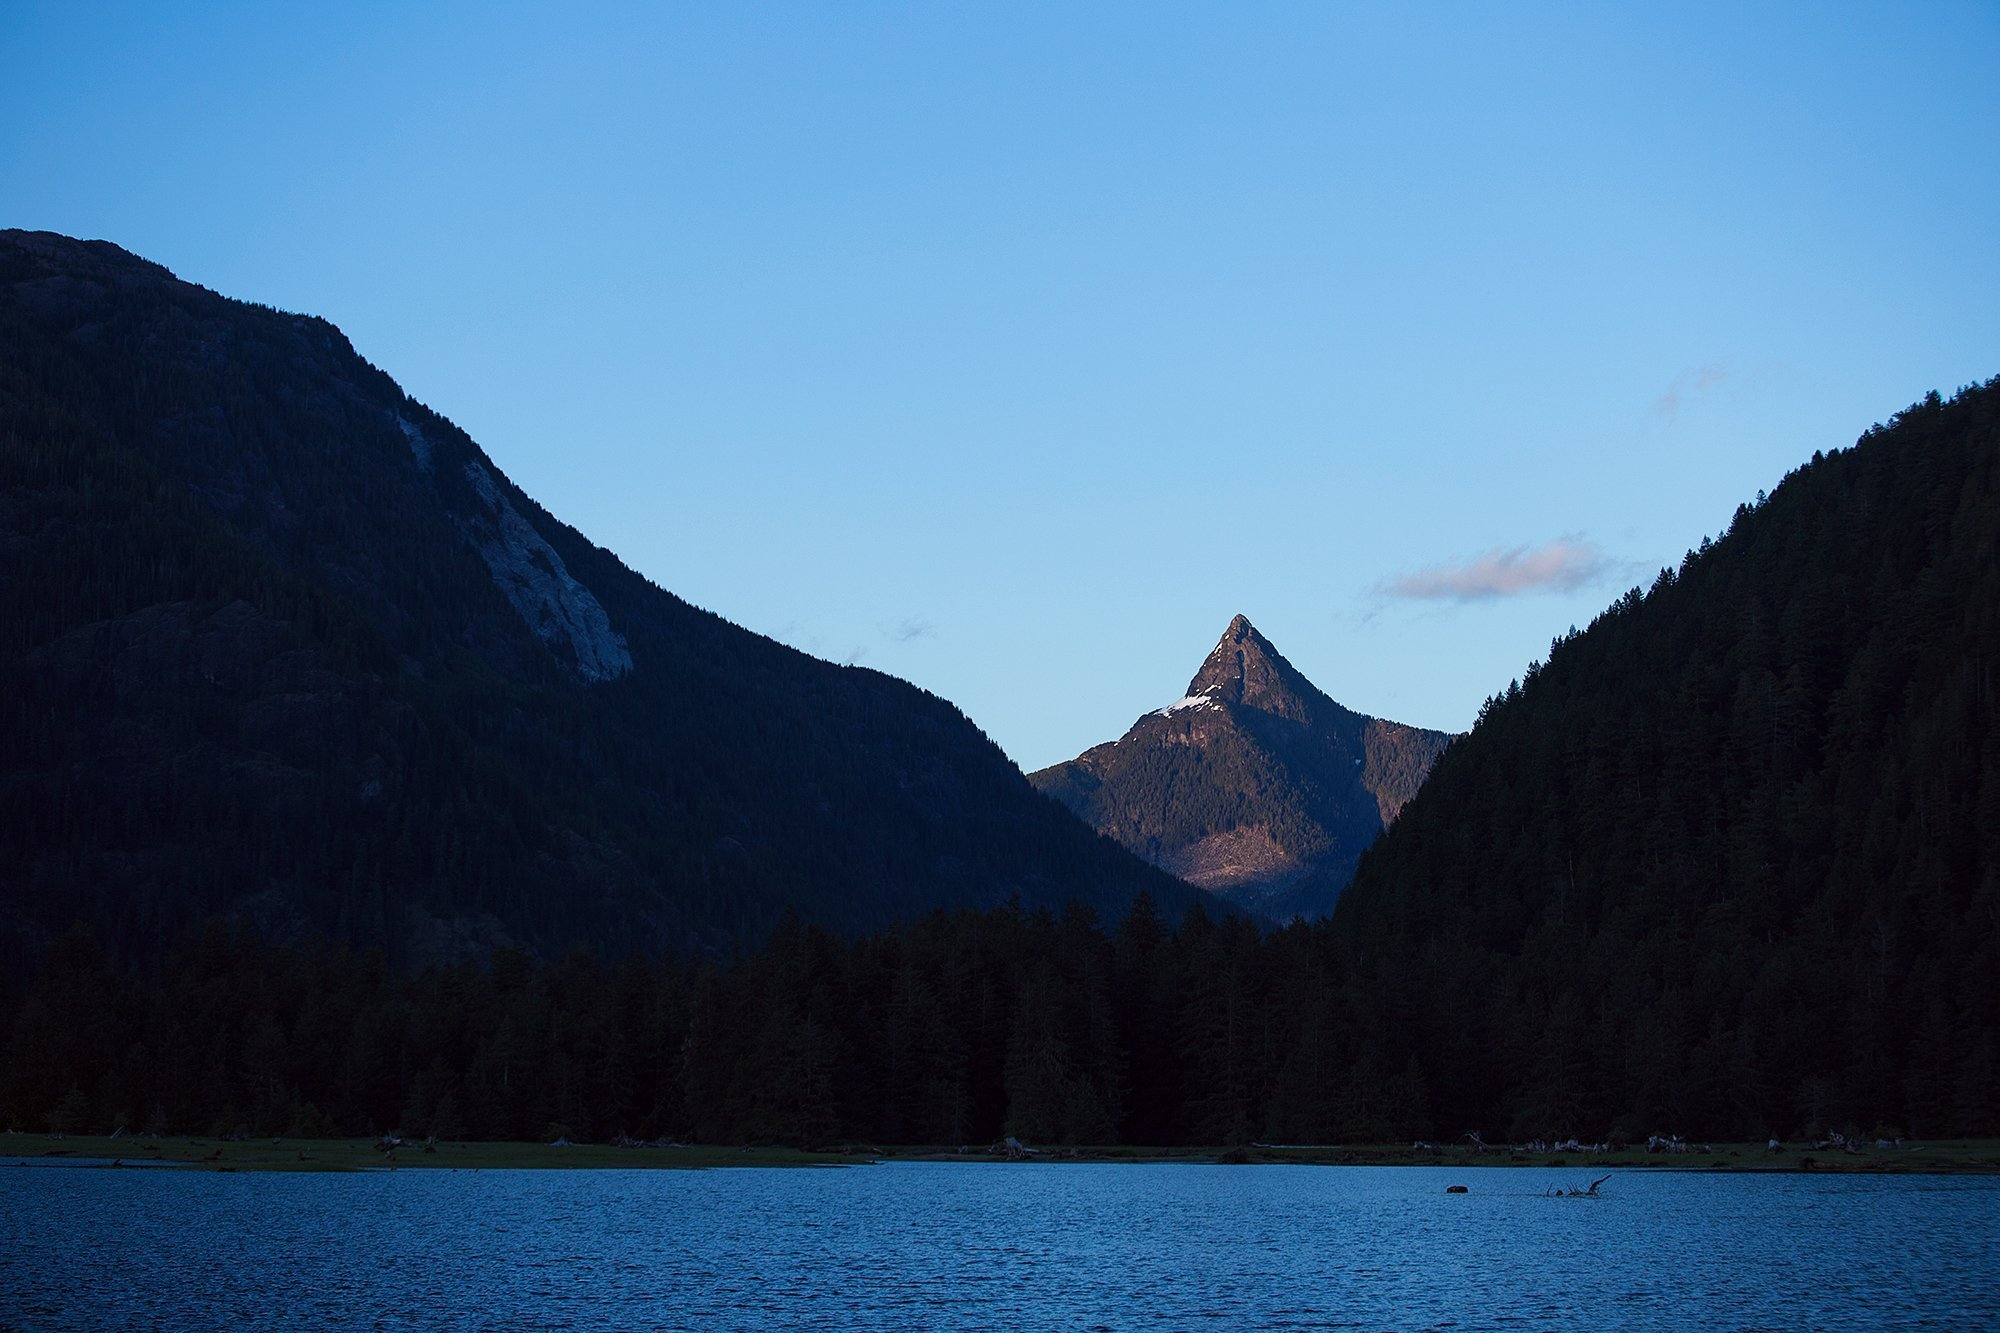 Nootka_Wilderness_Lodge_Mountain